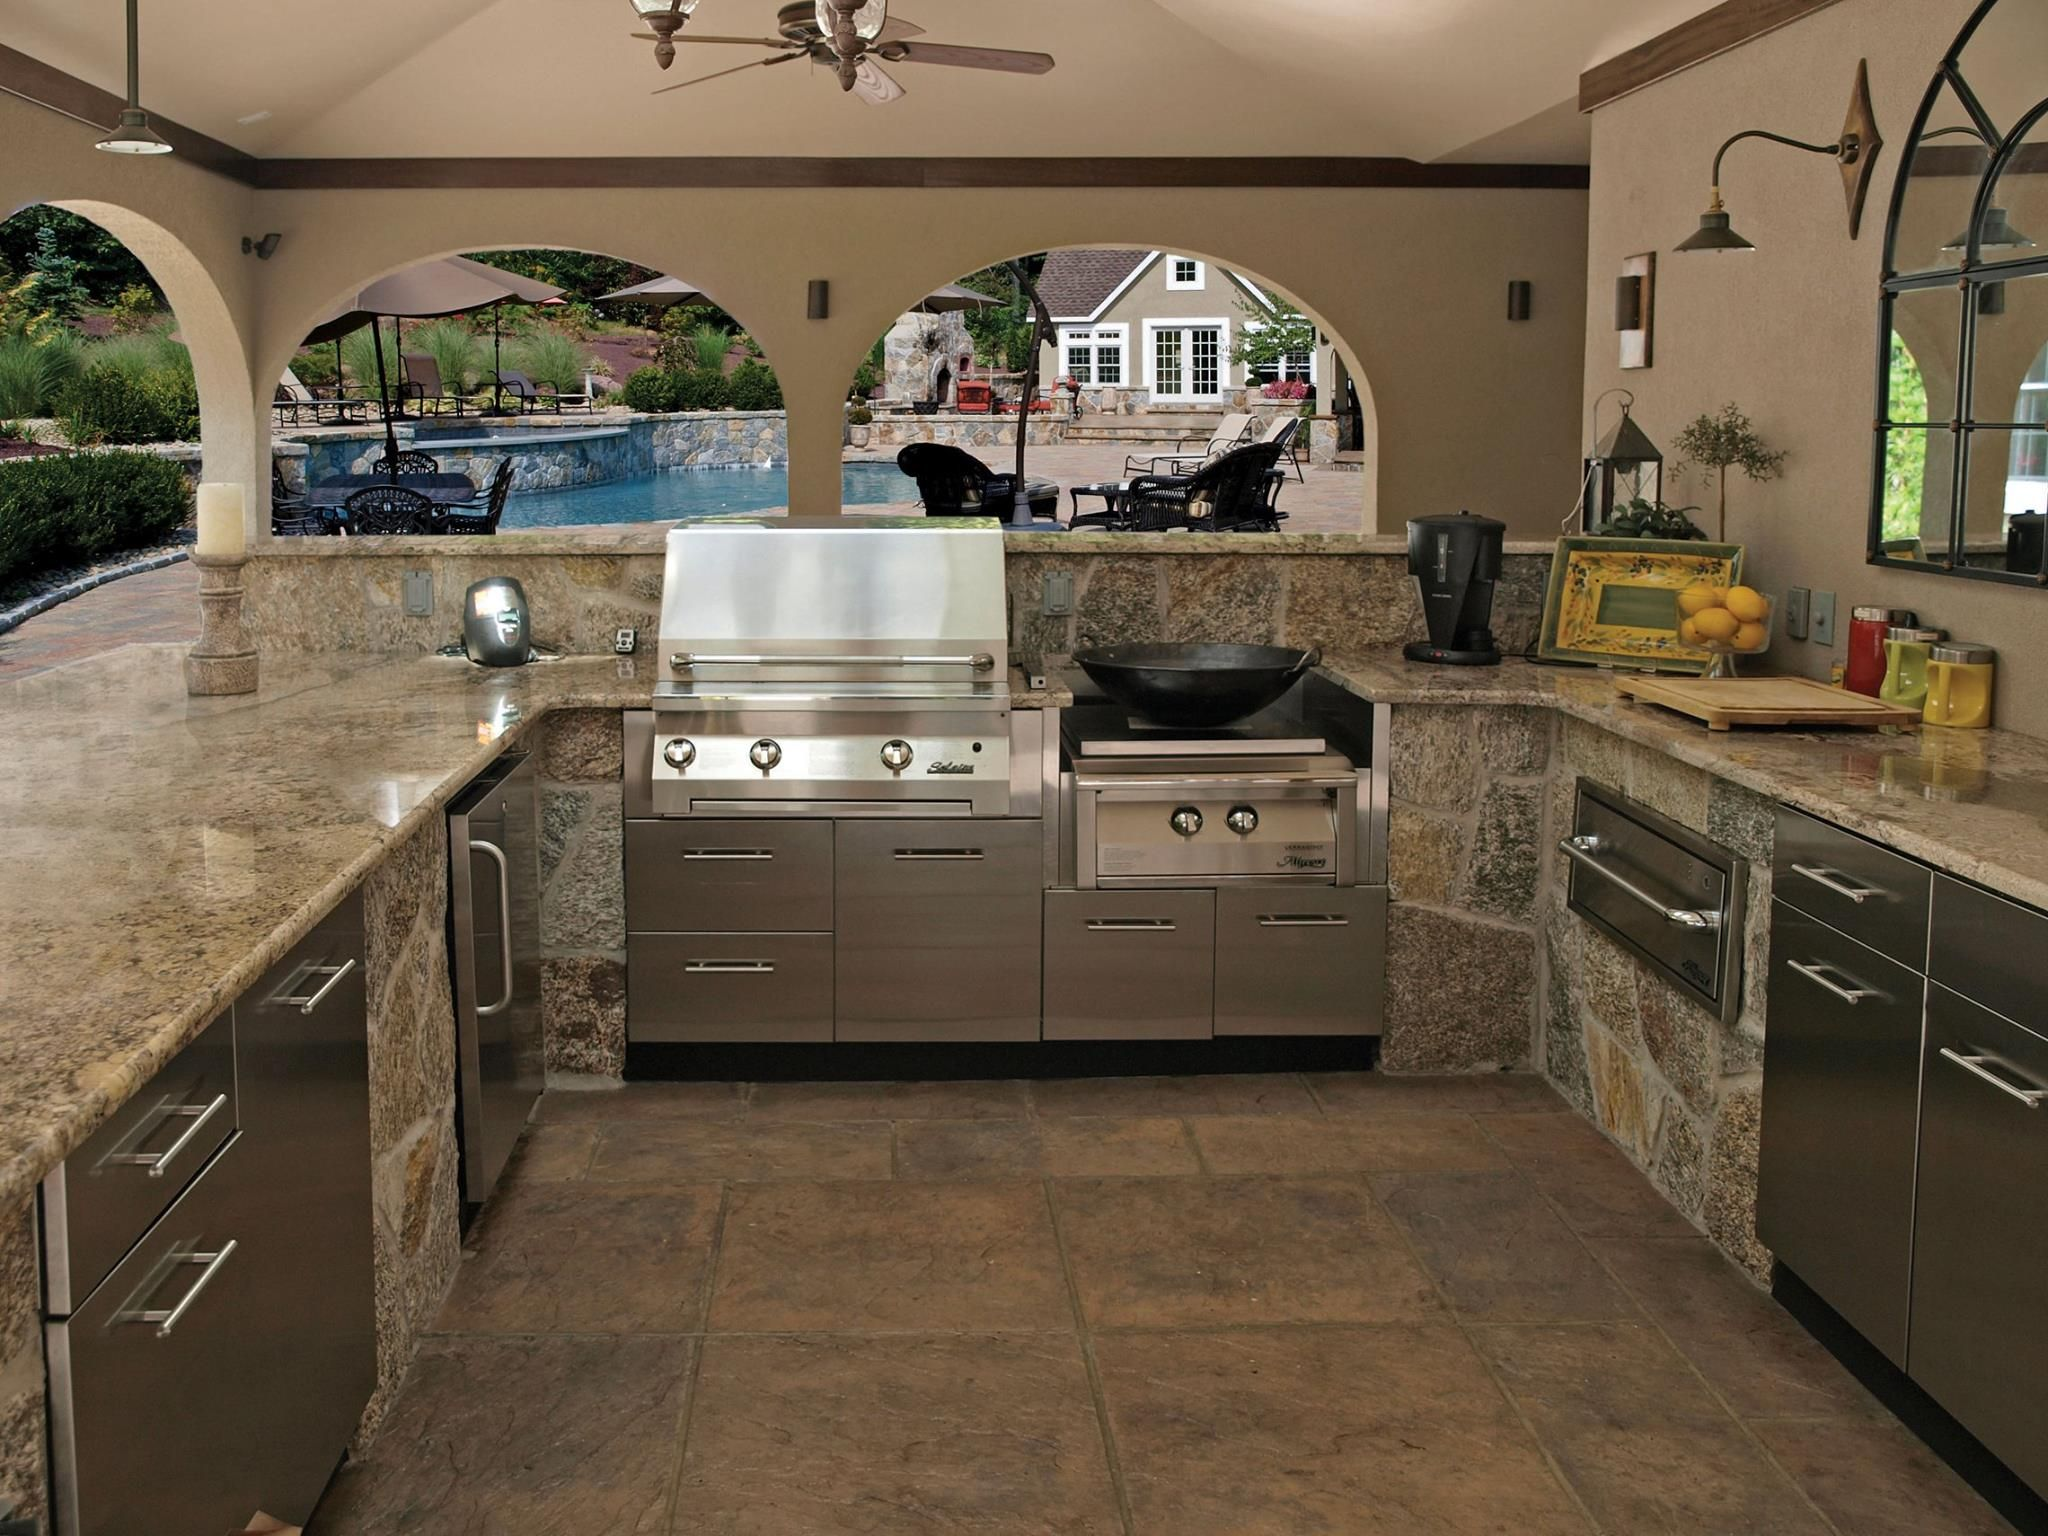 This Luxury Outdoor Kitchen By Danver Is Perfect For Inviting Guests Over For An Afternoon Outdoor Kitchen Cabinets Outdoor Kitchen Appliances Outdoor Kitchen